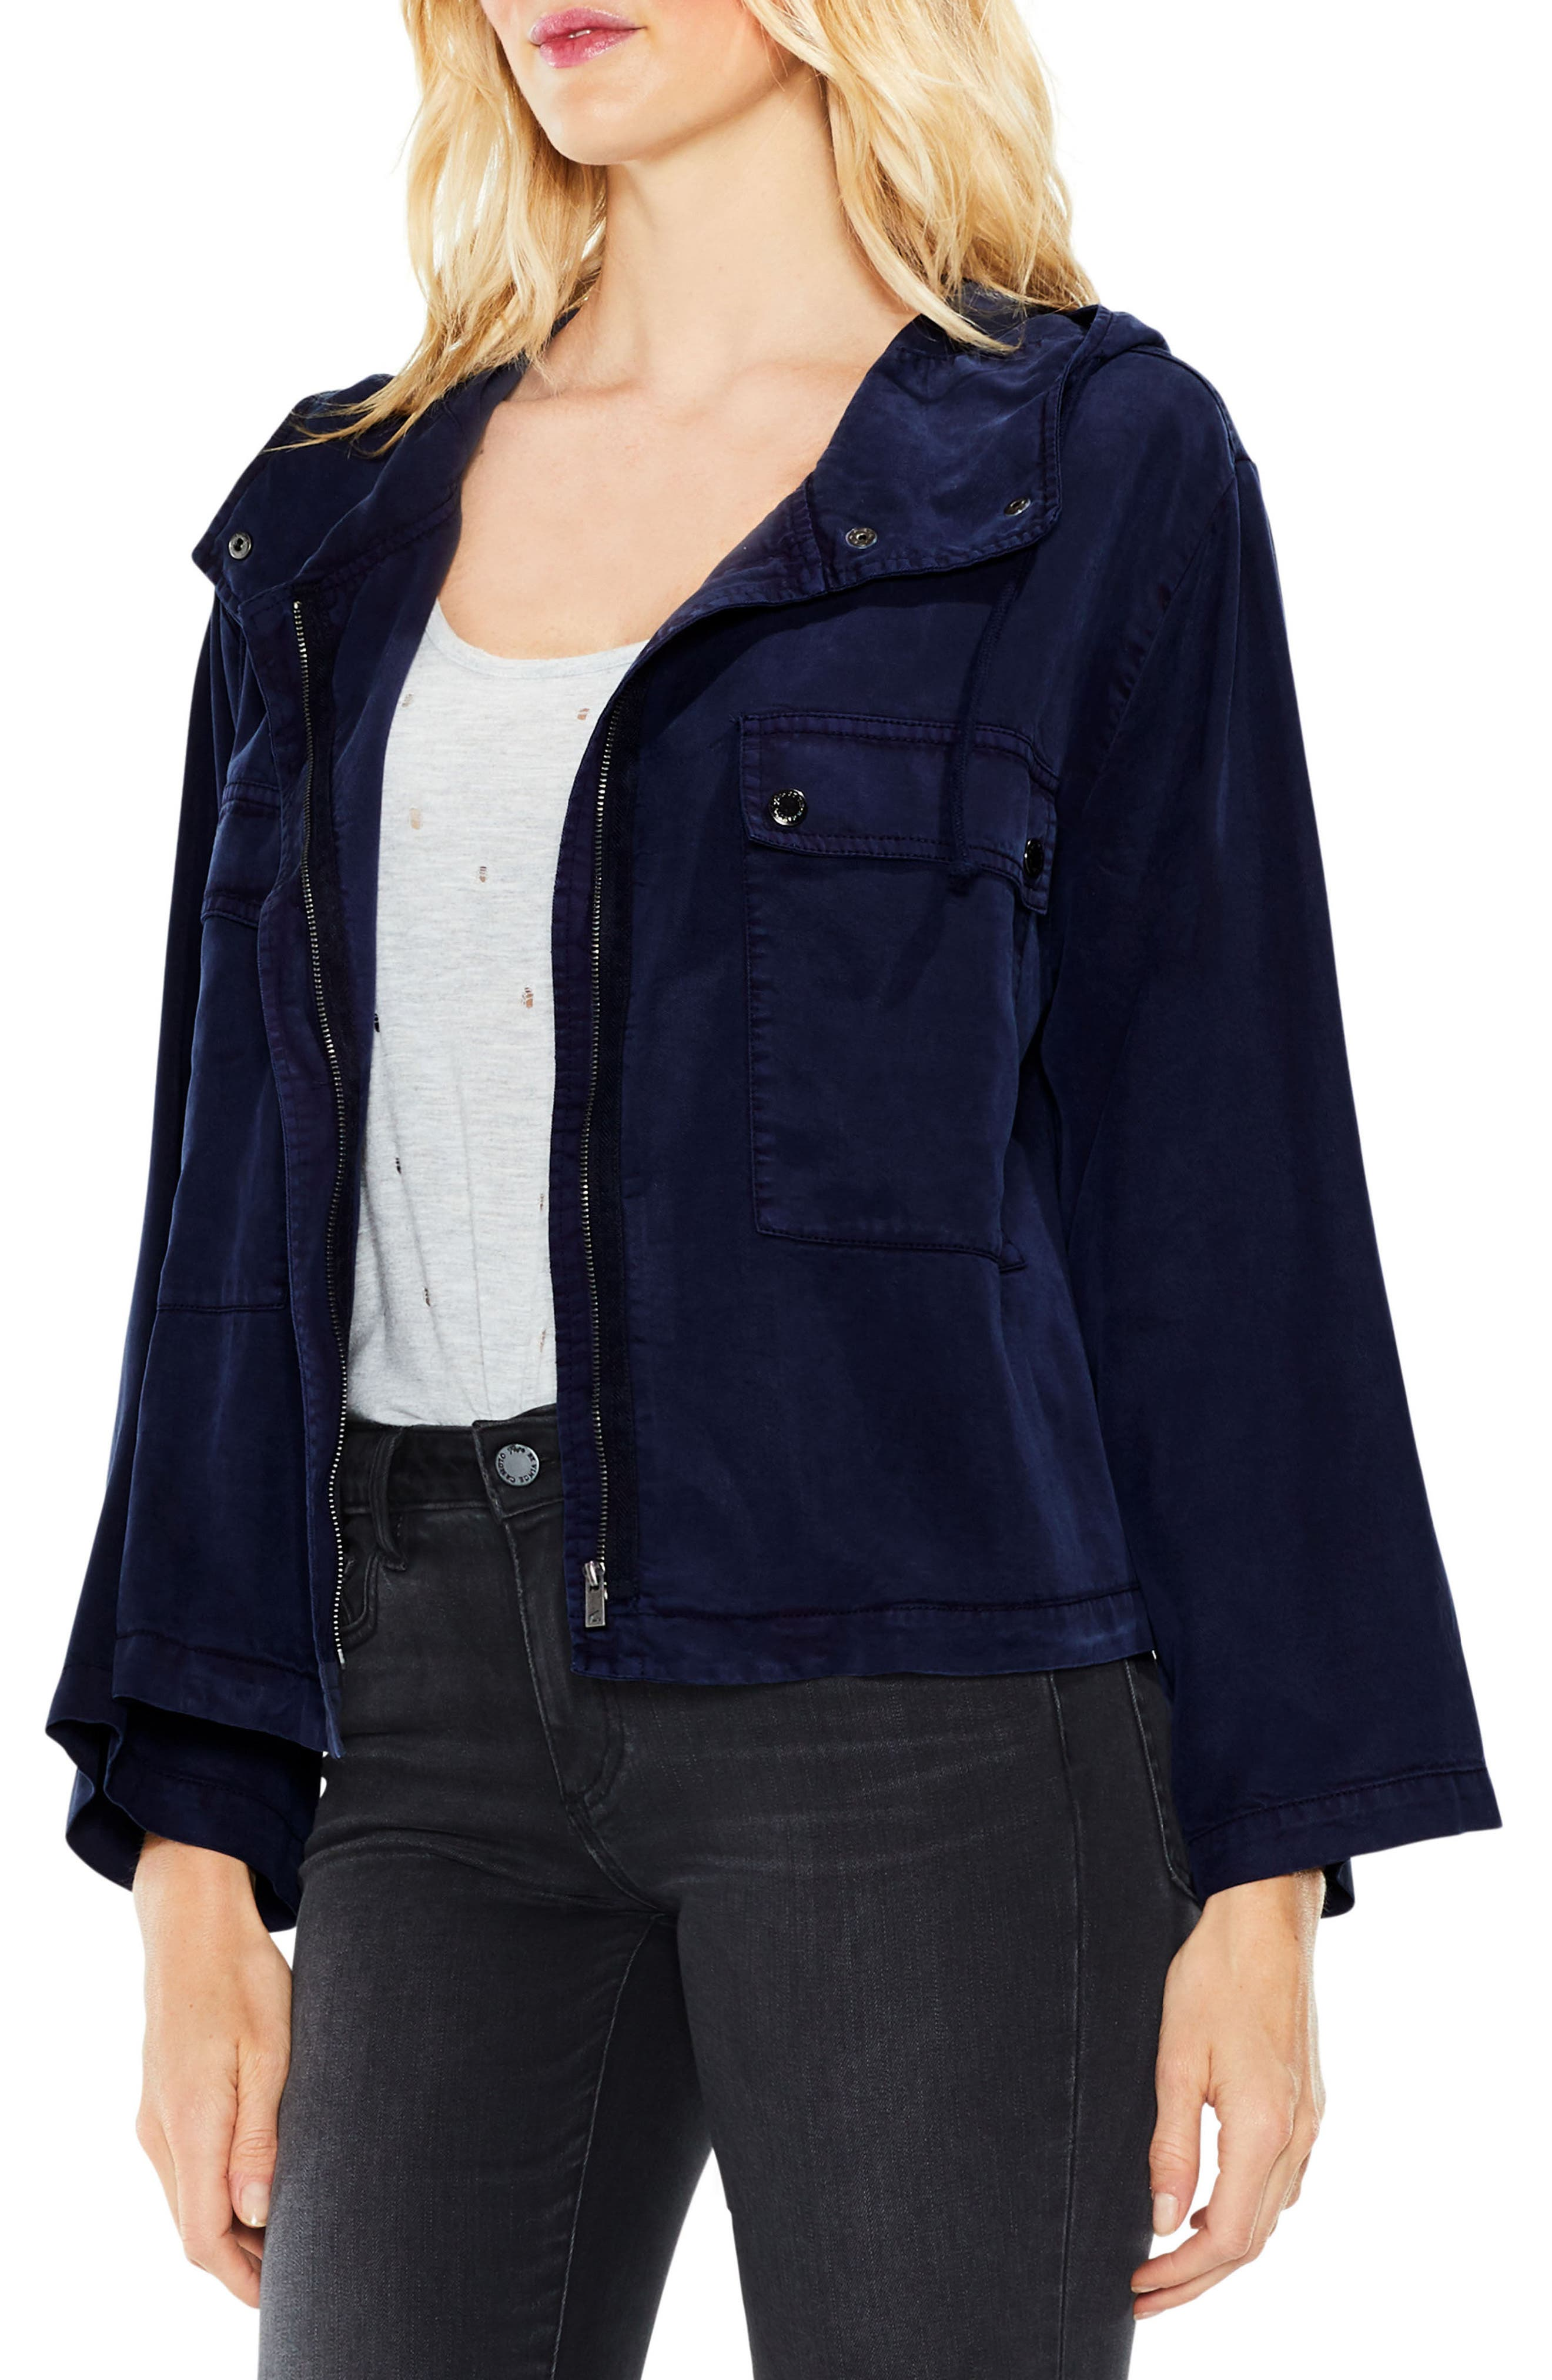 Bell Sleeve Hooded Jacket,                         Main,                         color, 461